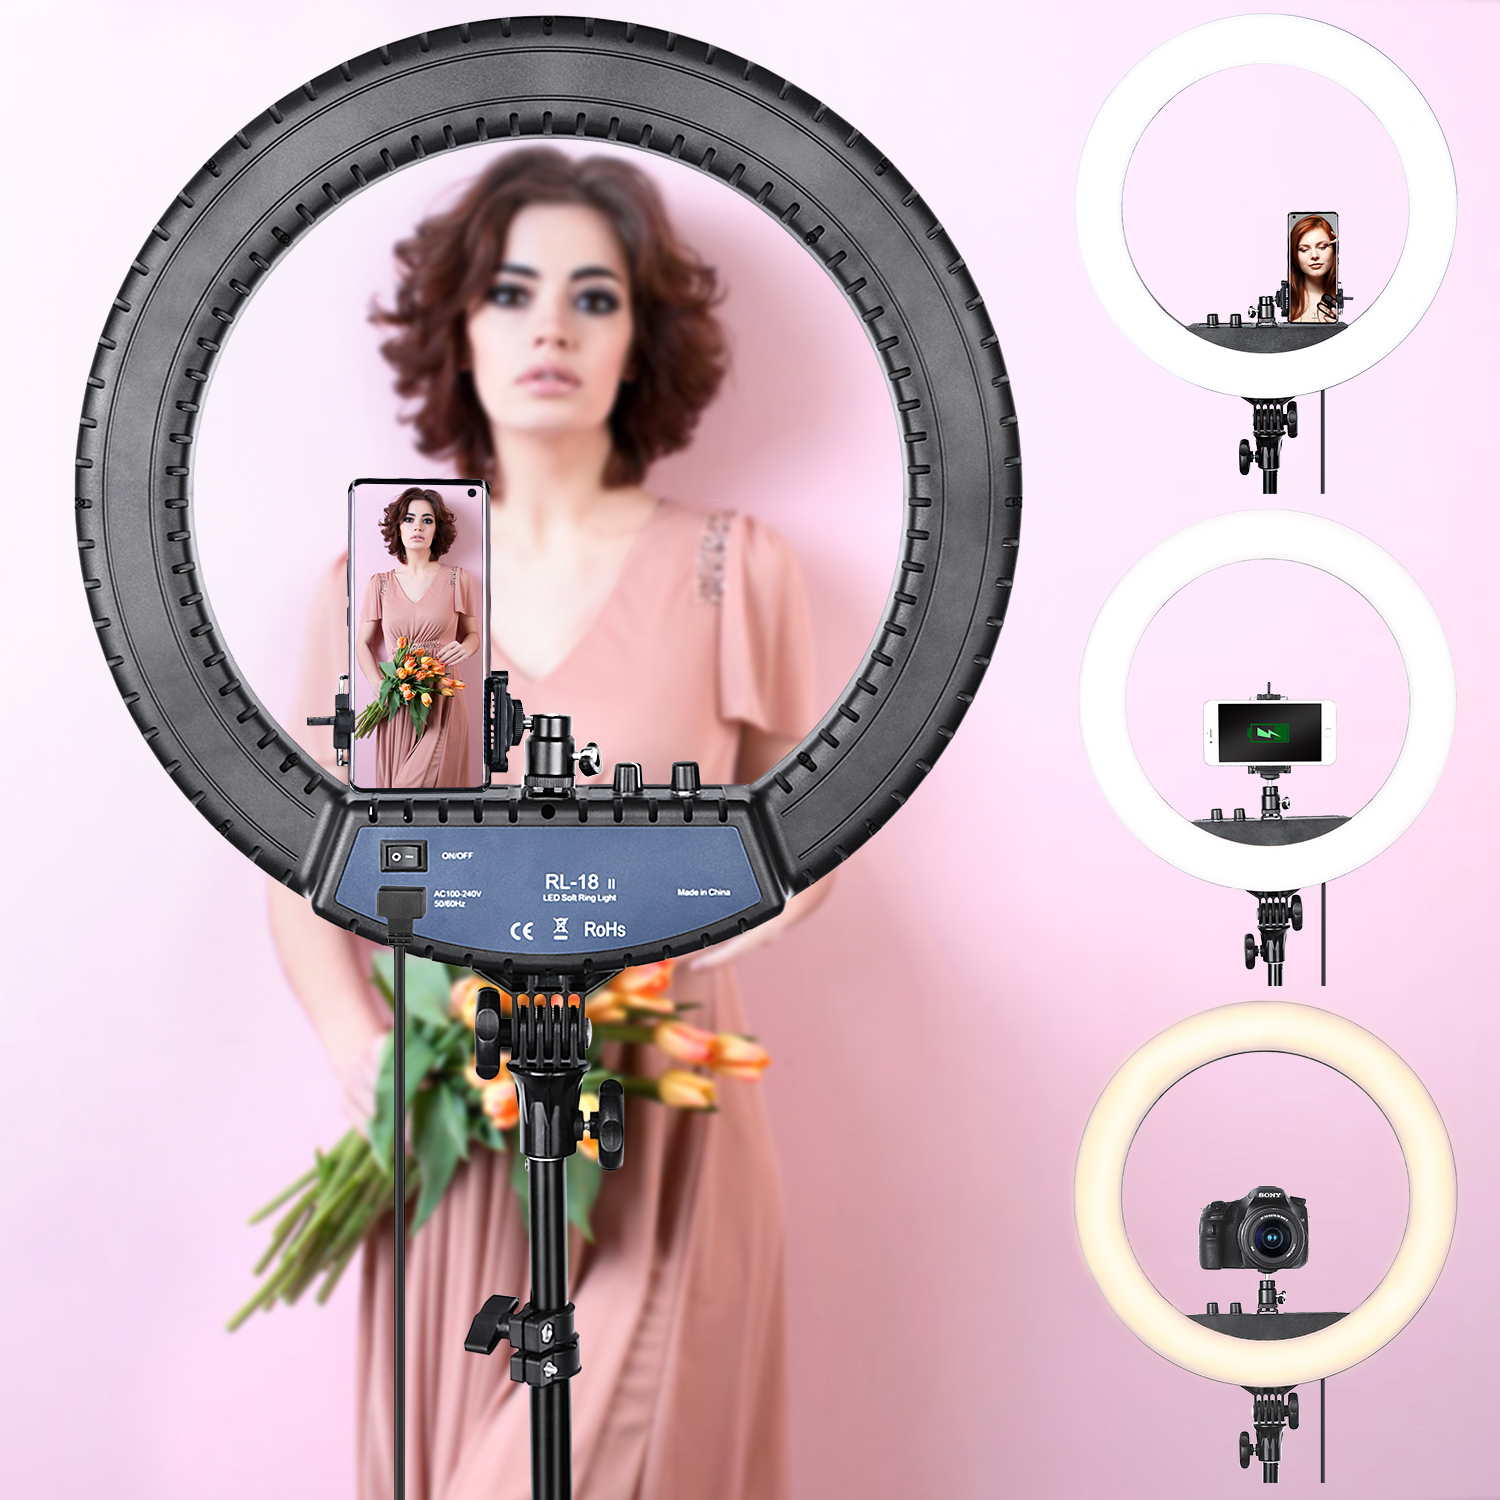 FOSOTO RL 18II Ring Lamp 18 Inch Photographic Lighting Ringlight 512Pcs Led Ring Light With Tripod FOSOTO RL-18II Ring Lamp 18 Inch Photographic Lighting Ringlight 512Pcs Led Ring Light With Tripod Stand For Camera Phone Makeup